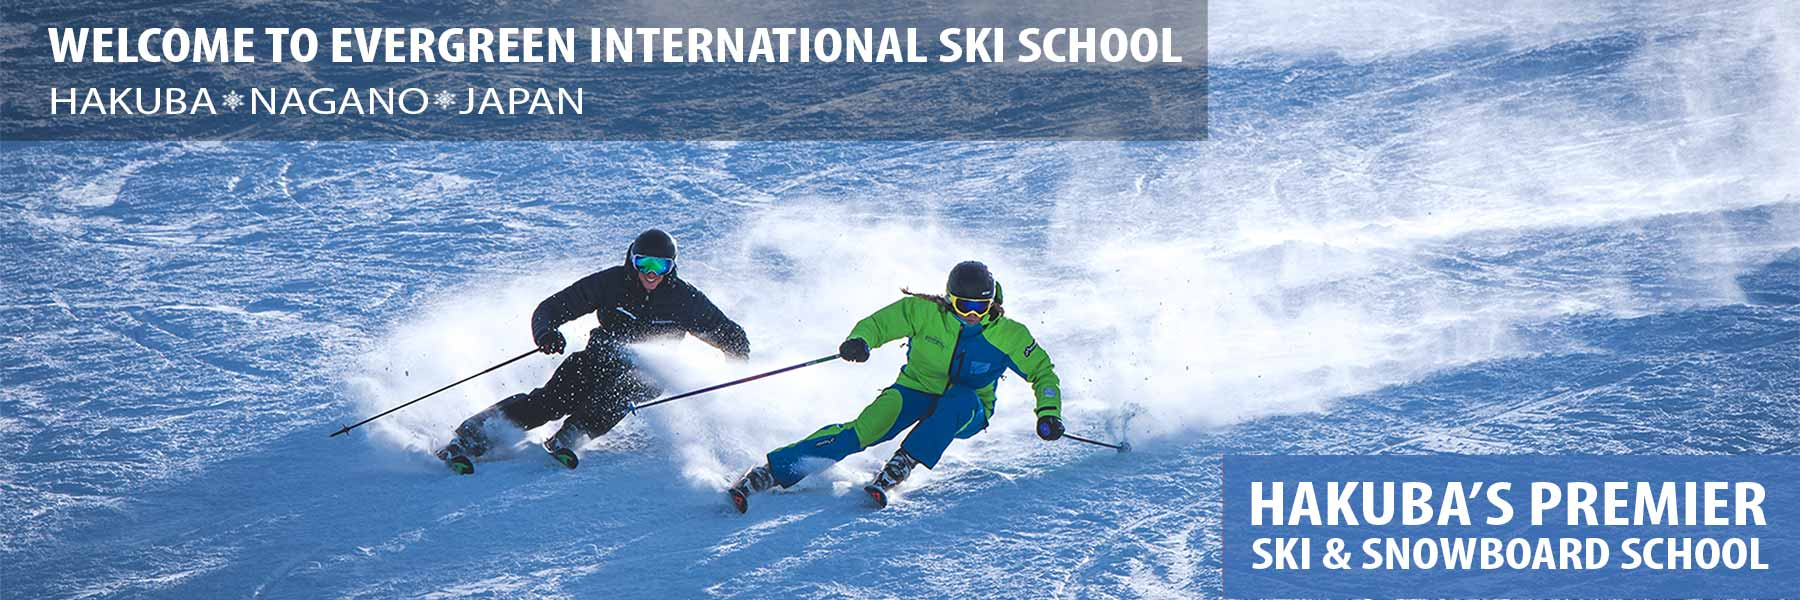 japan ski school header - private ski lessons